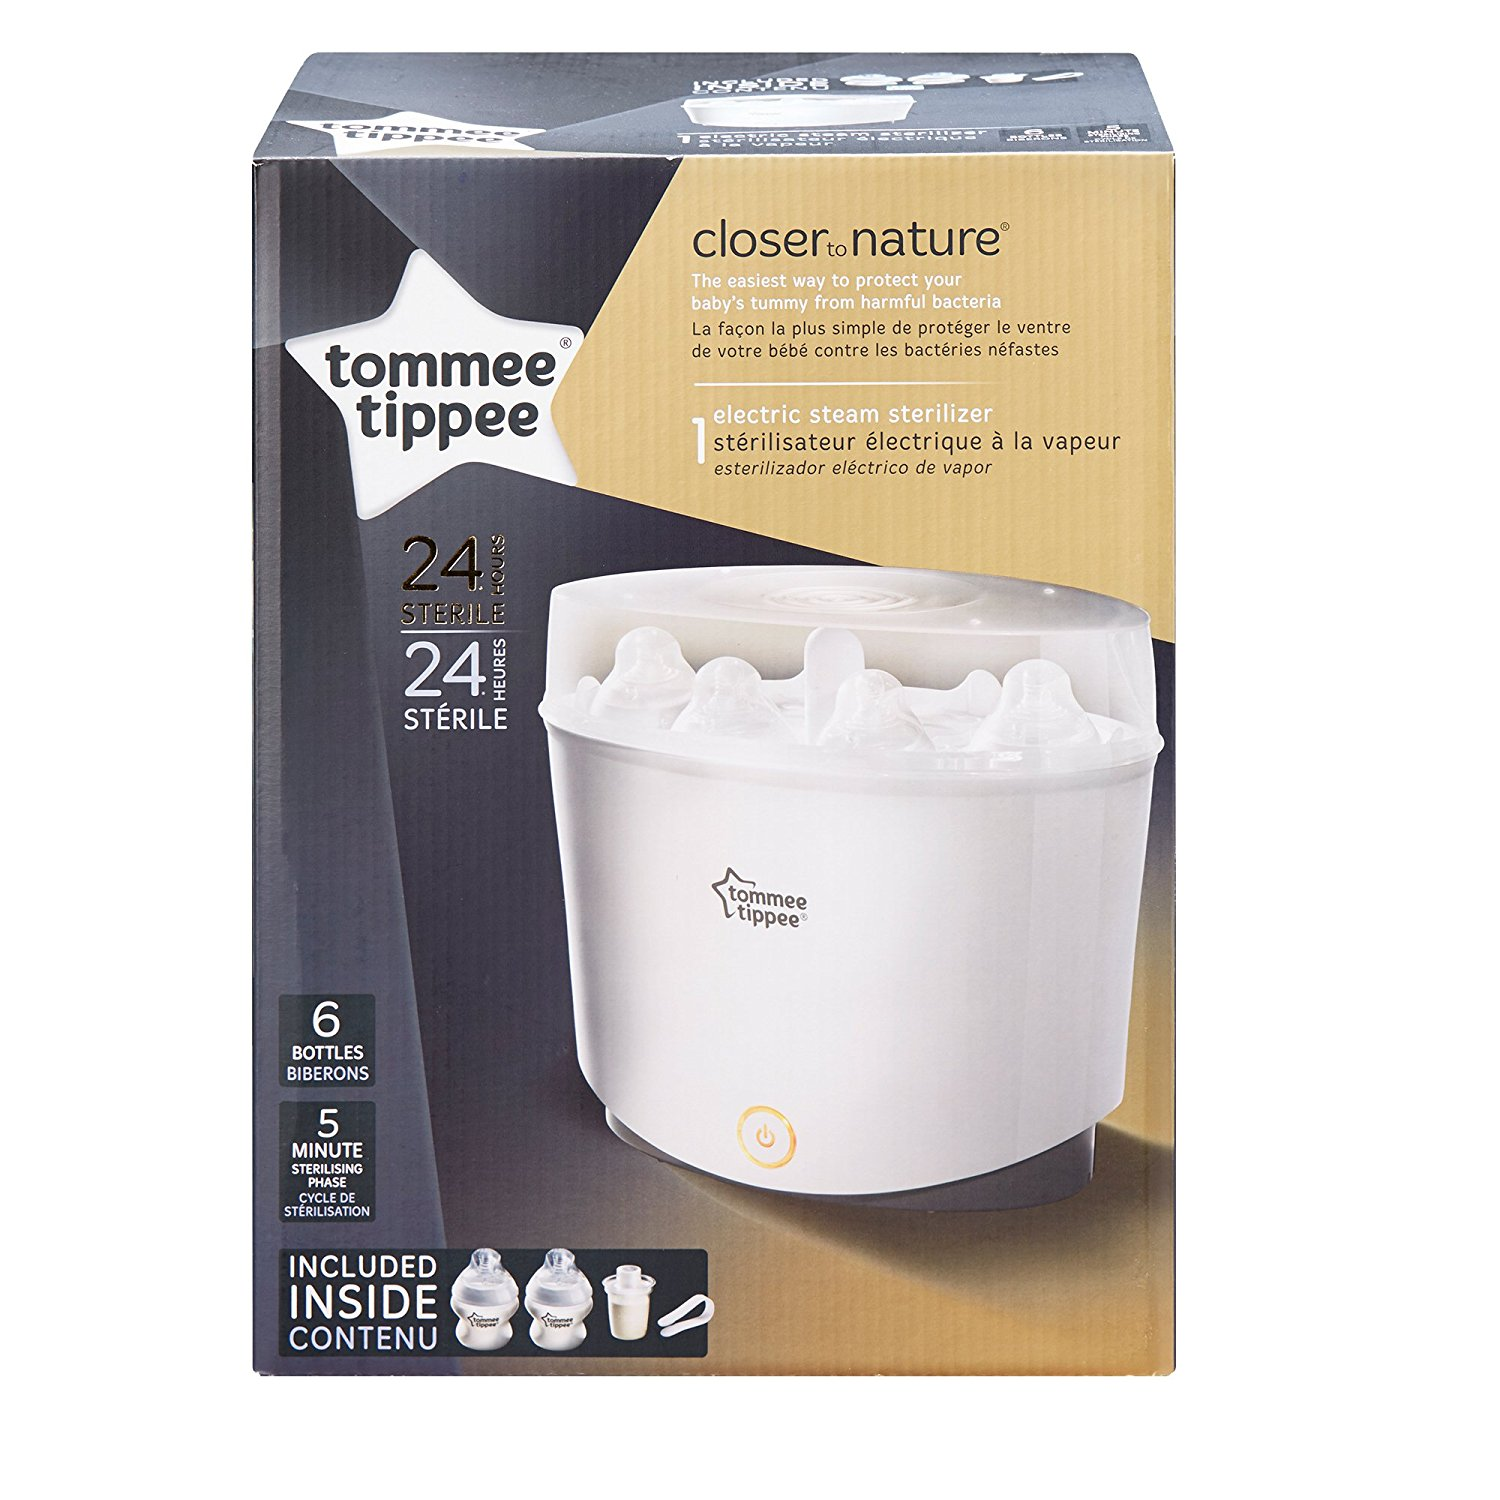 Tommee Tippee Electric Steam Sterilizer